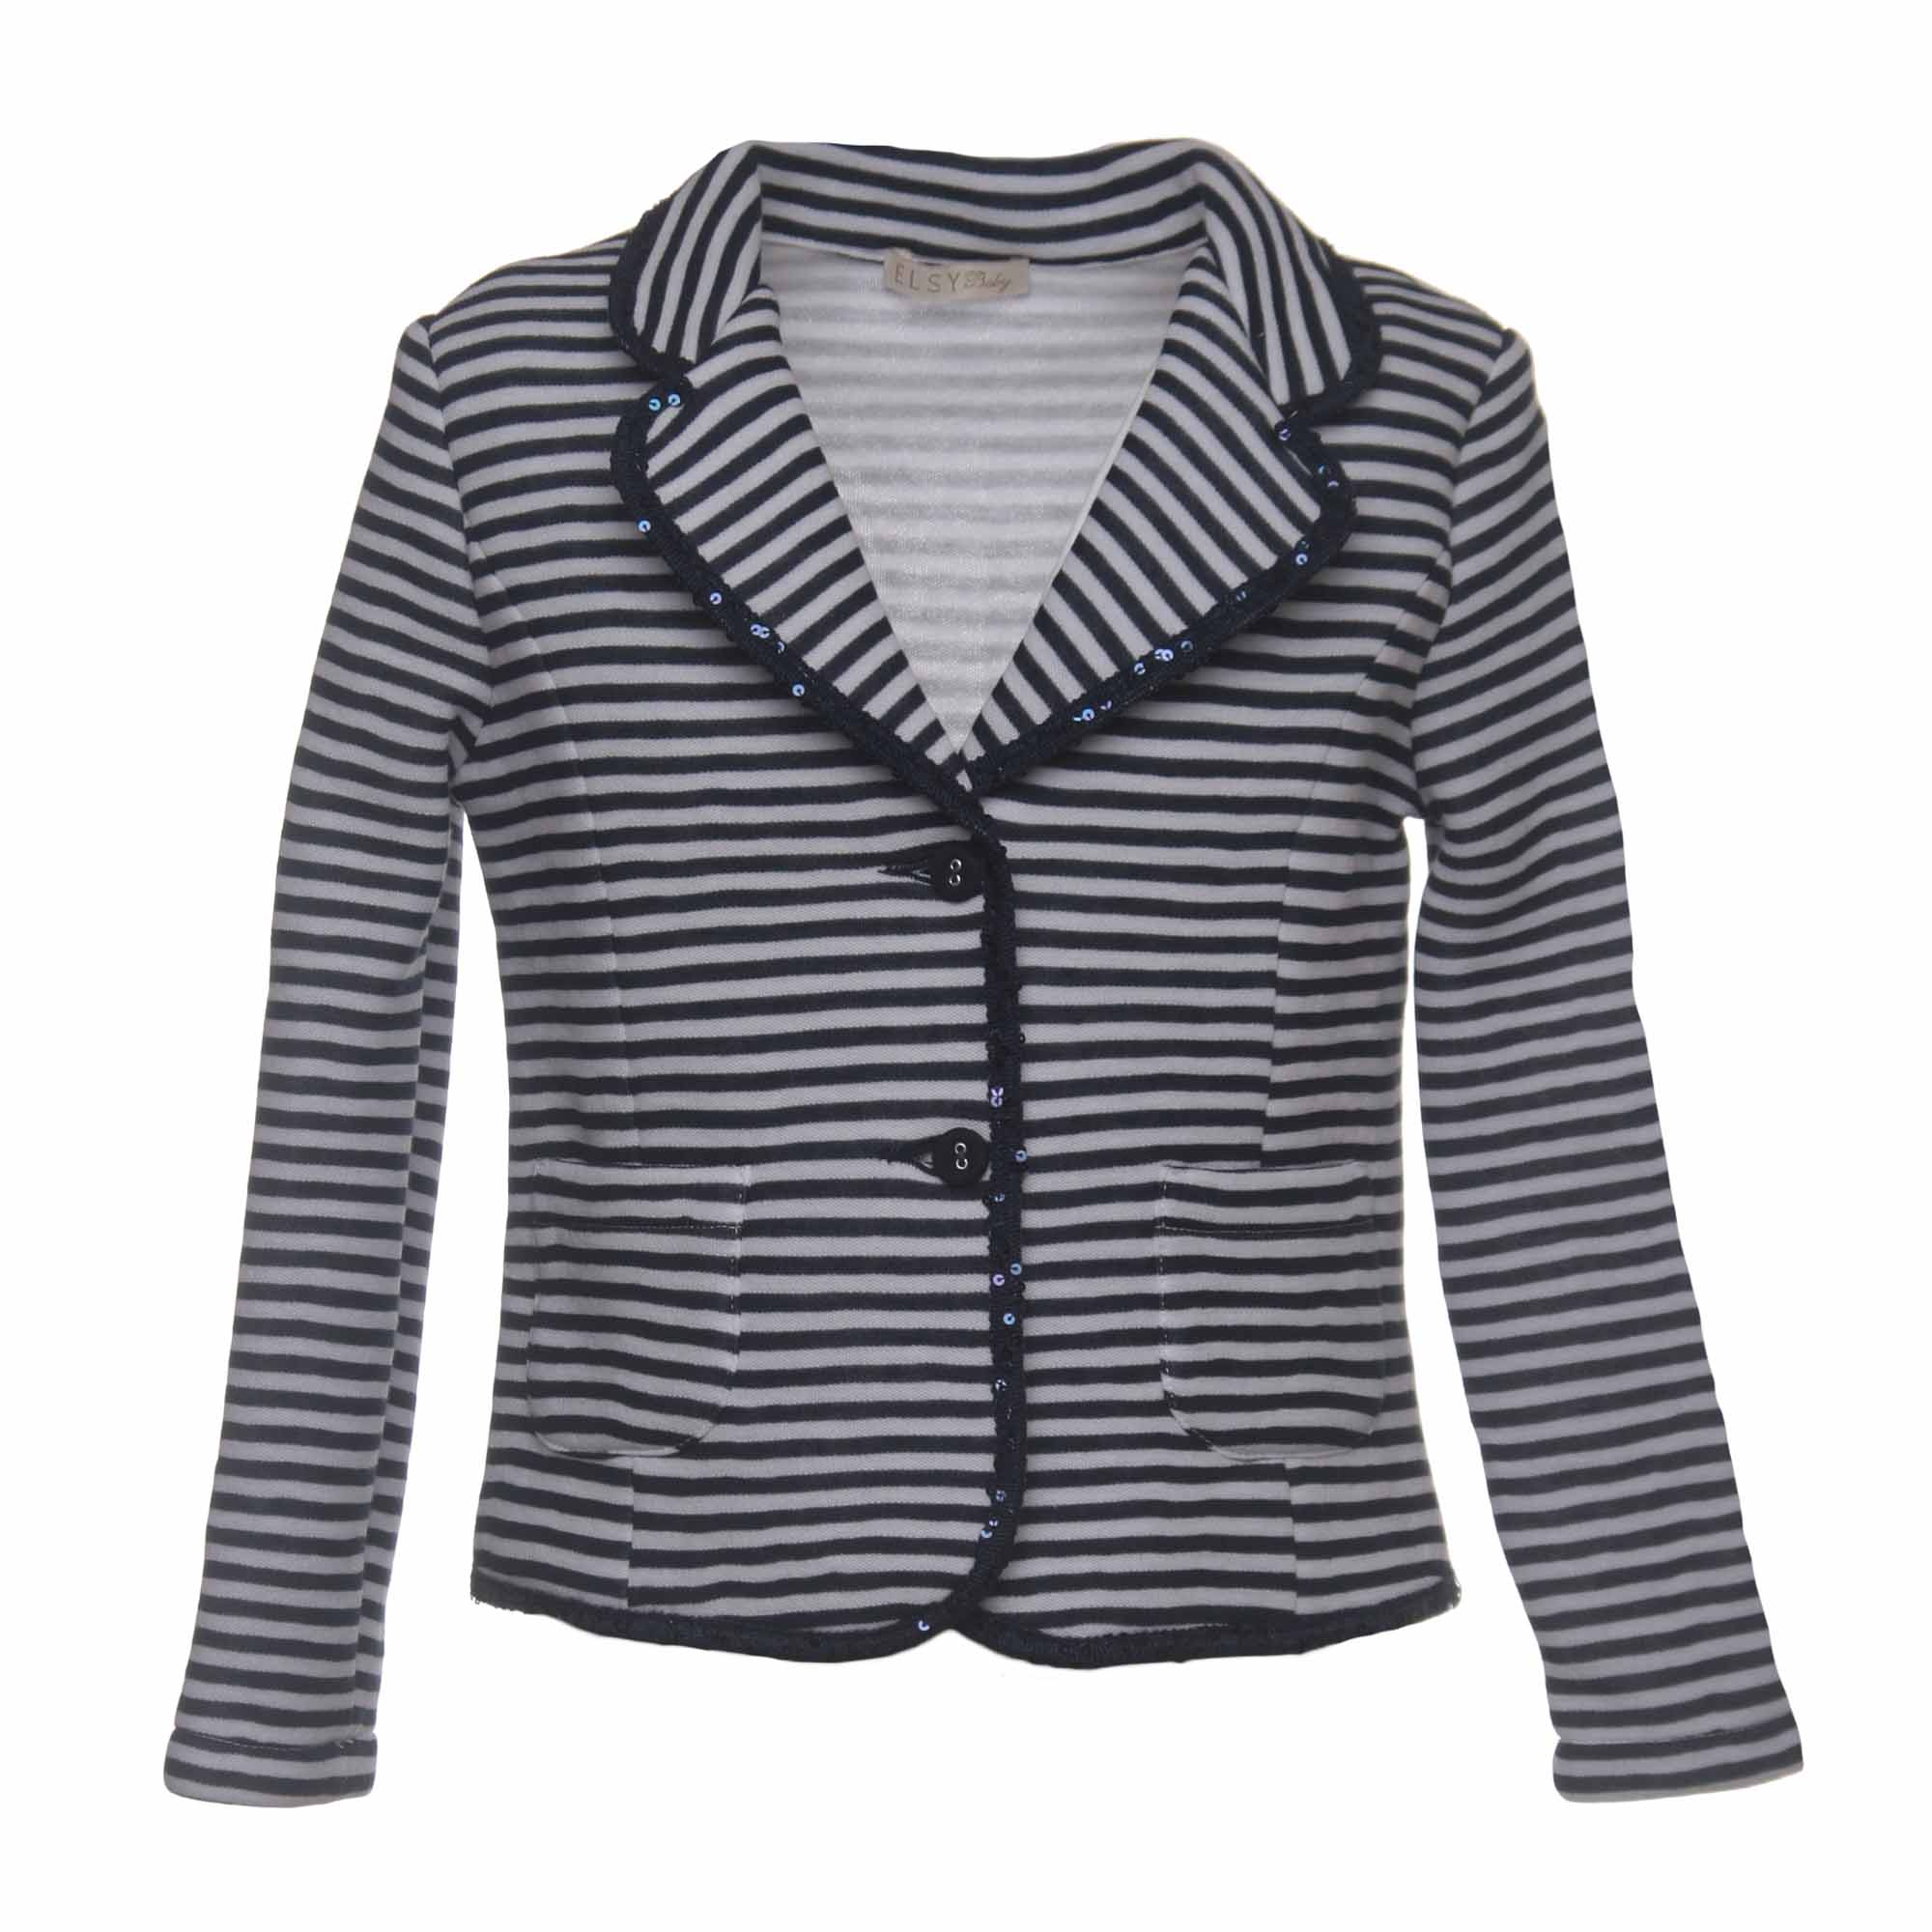 competitive price 16404 6e78c Giacca Bambina Navy Style Bianca E Blu In Jersey